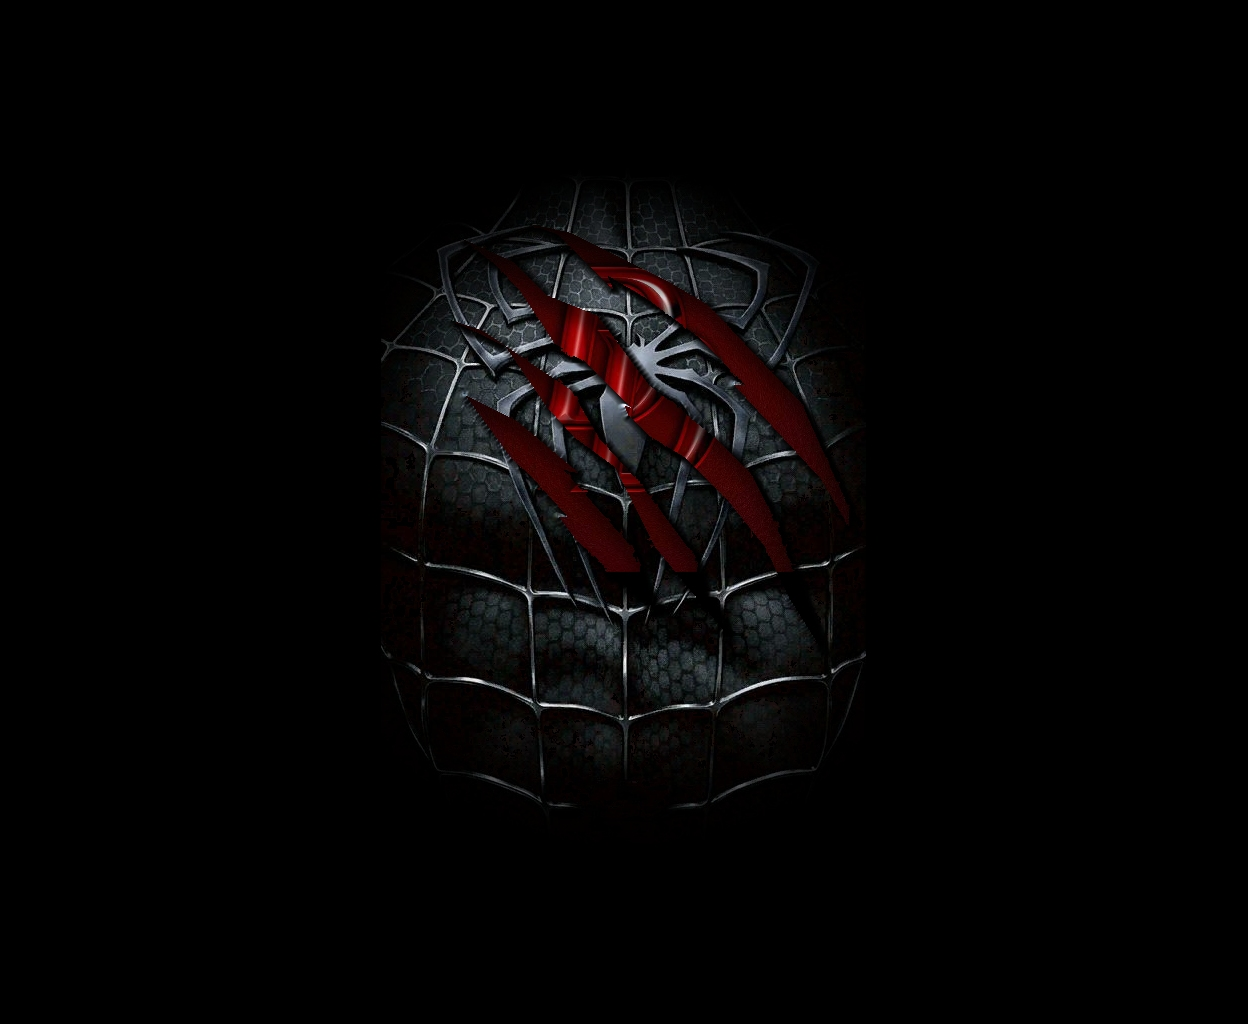 Spiderman 3 Wallpaper - WallpaperSafari